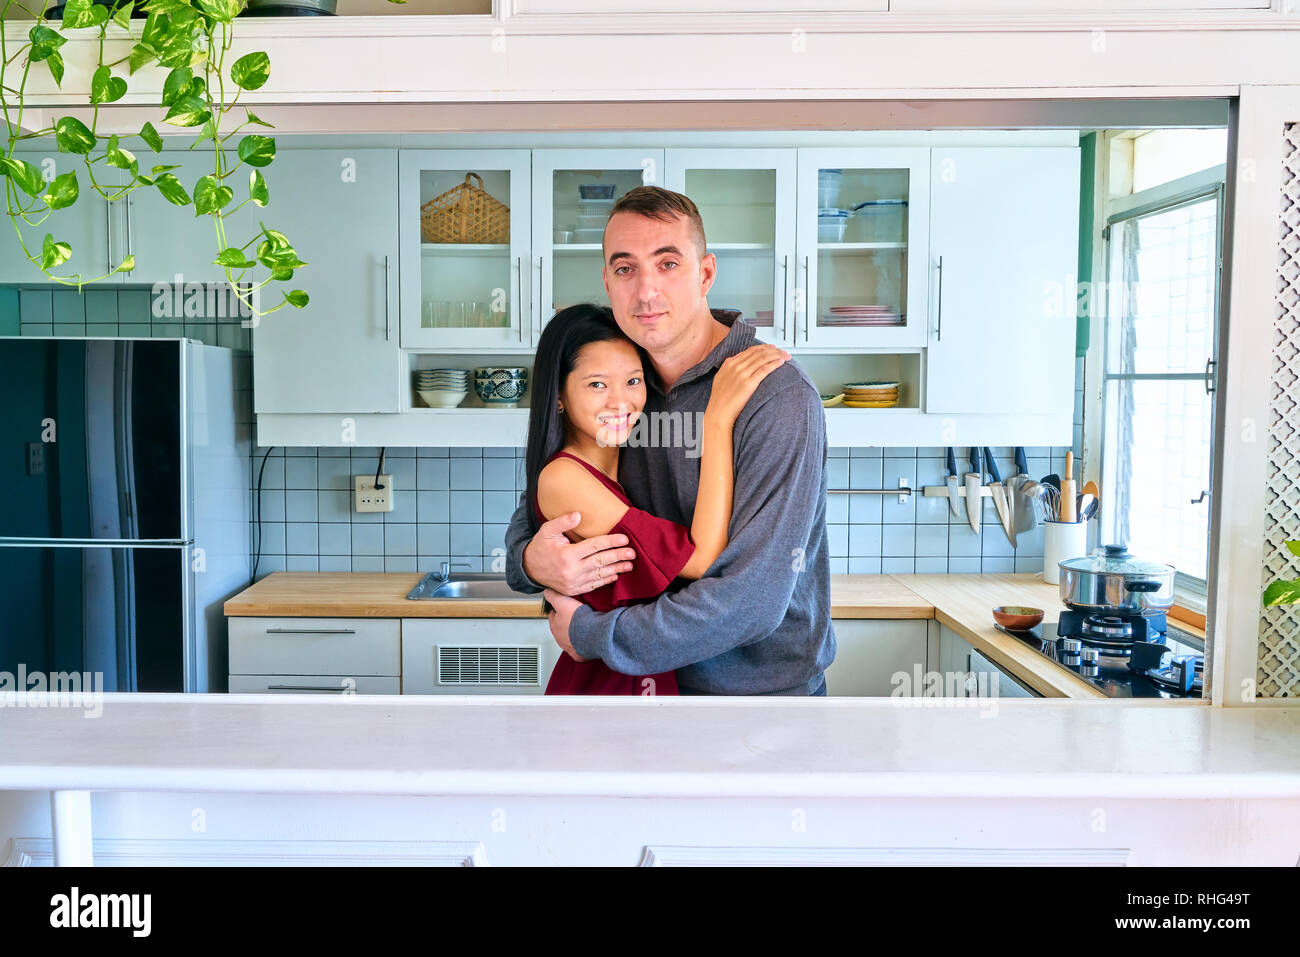 Lovely couple posing - hugging and looking at camera - Stock Image